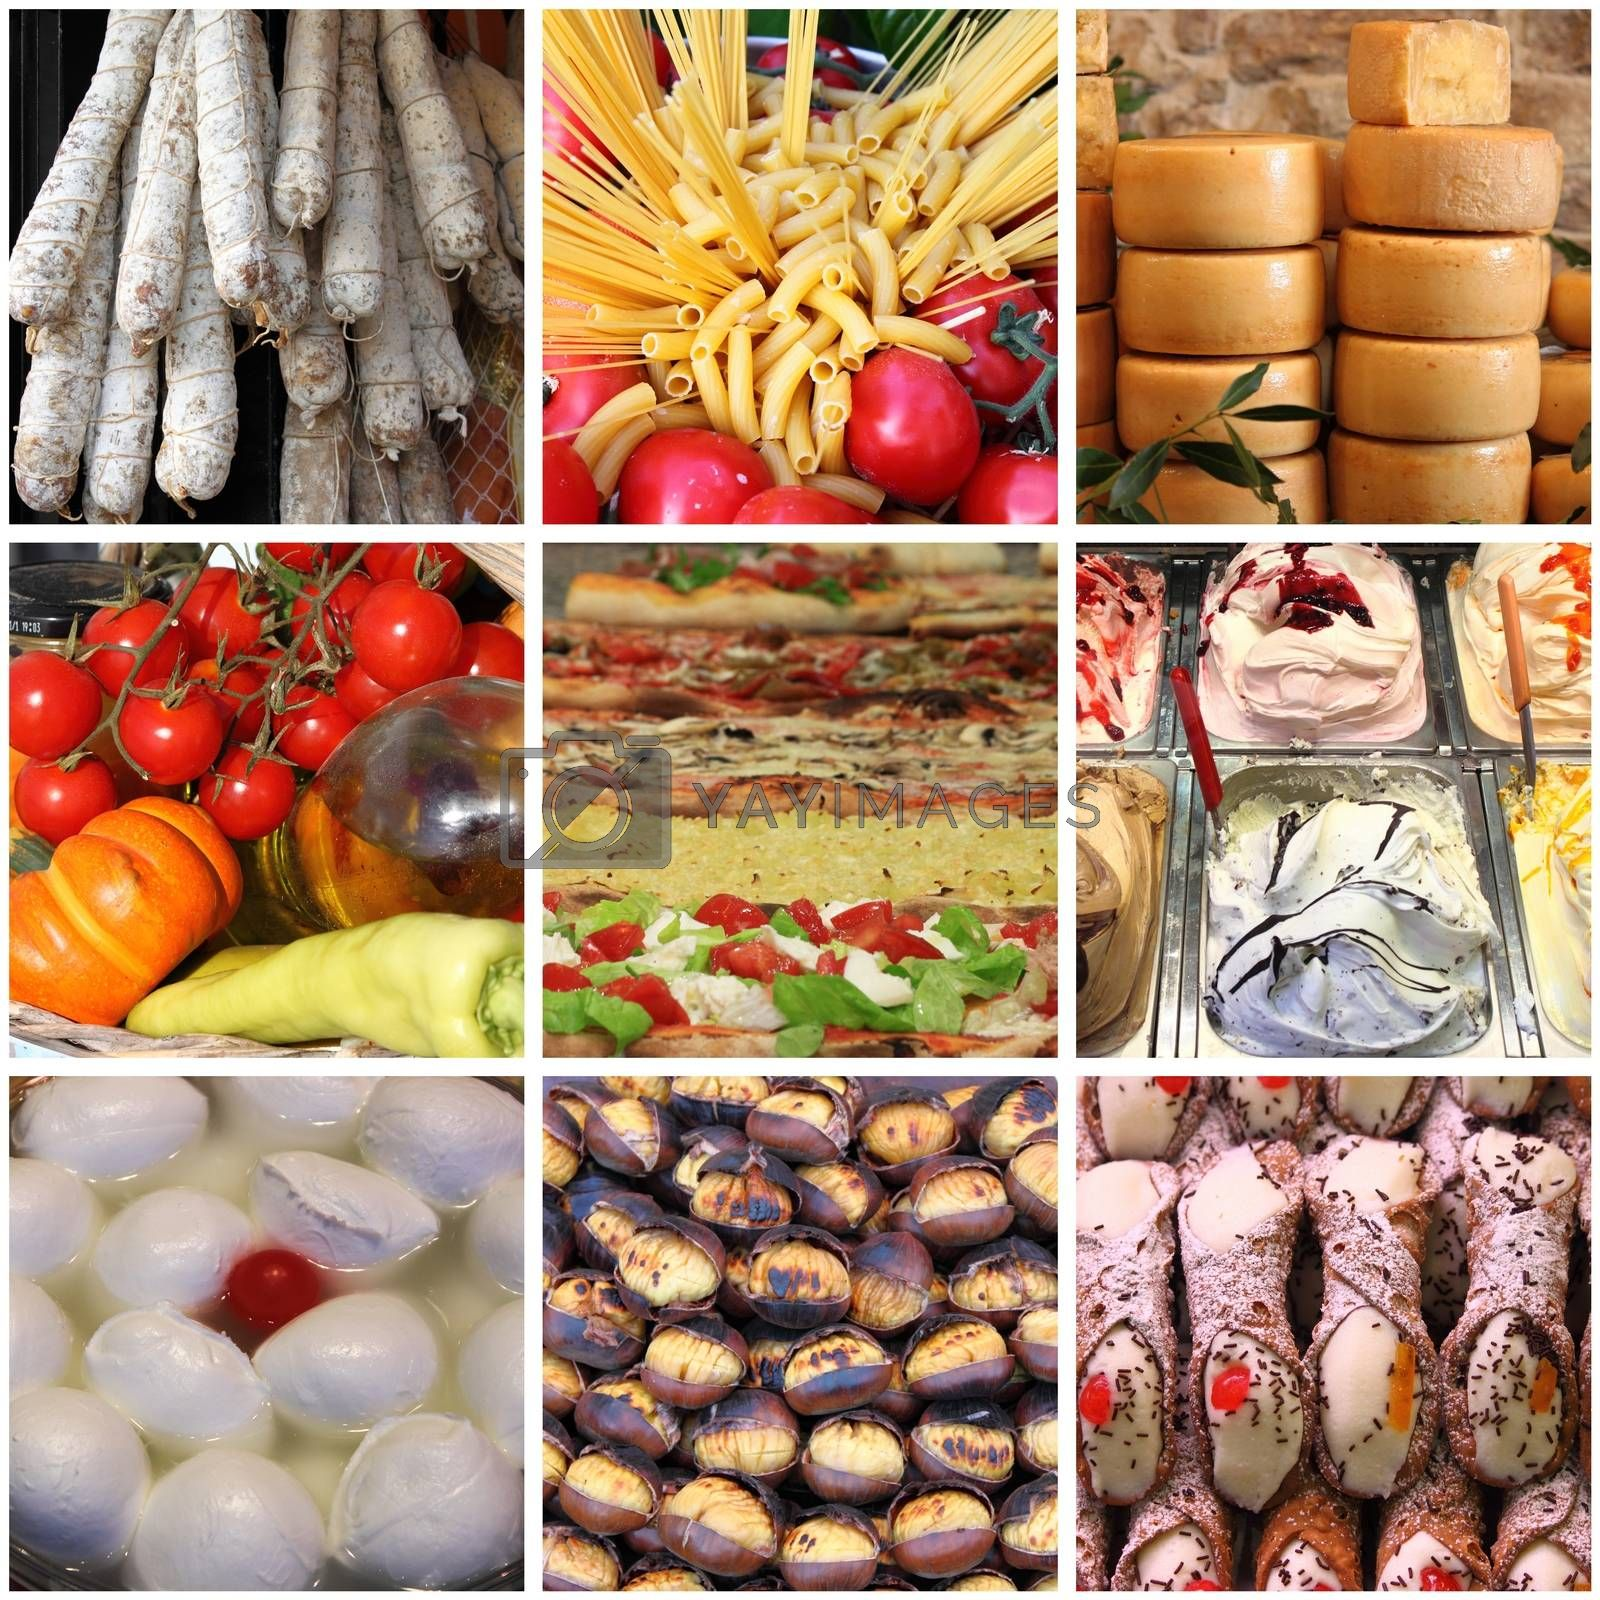 Italian food collage by alessandro0770